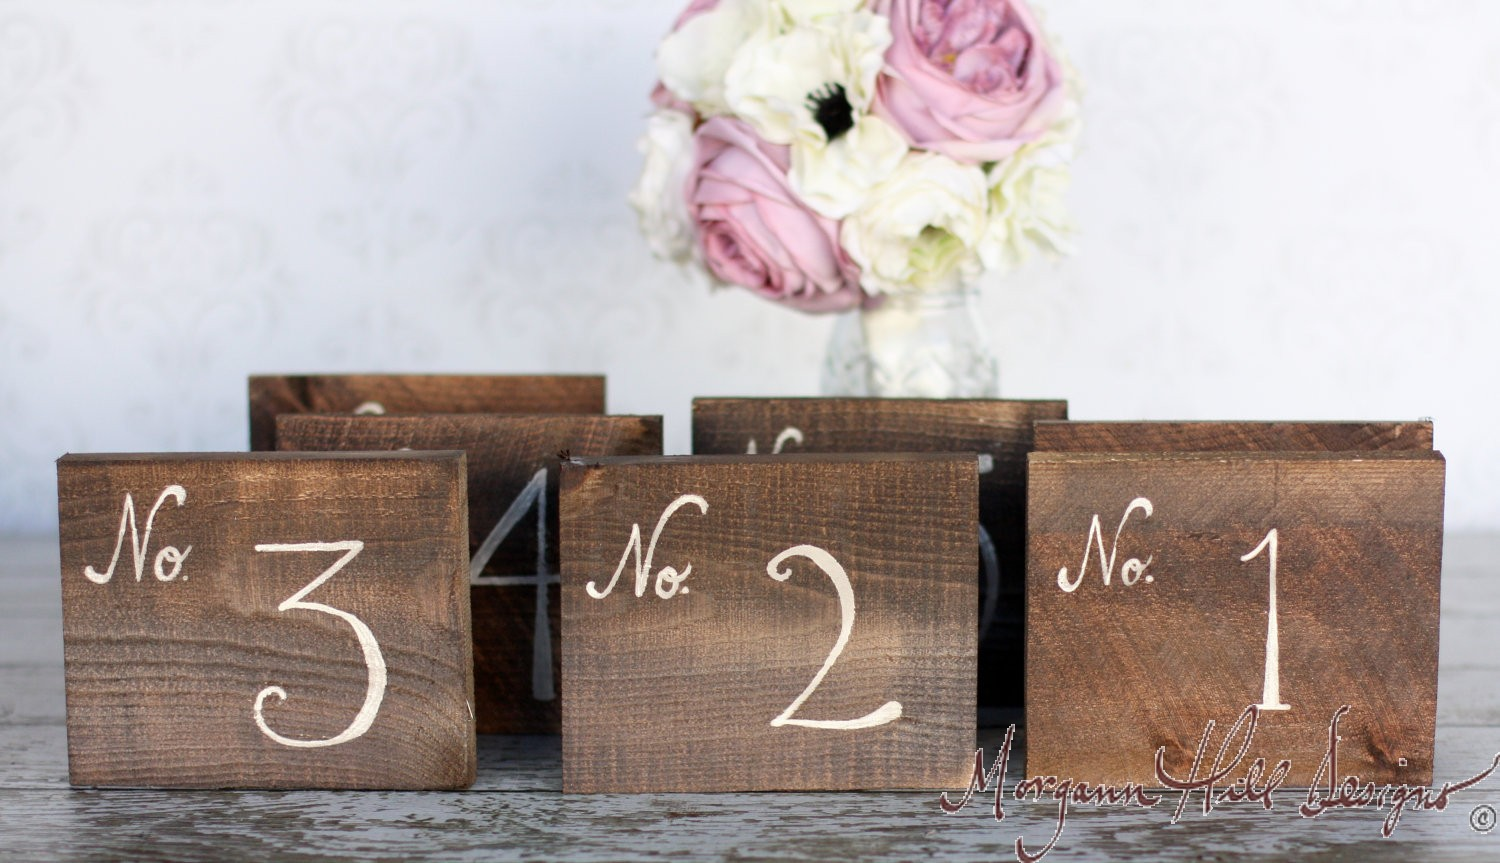 Morgann hill designs rustic table numbers barn wood for Table numbers